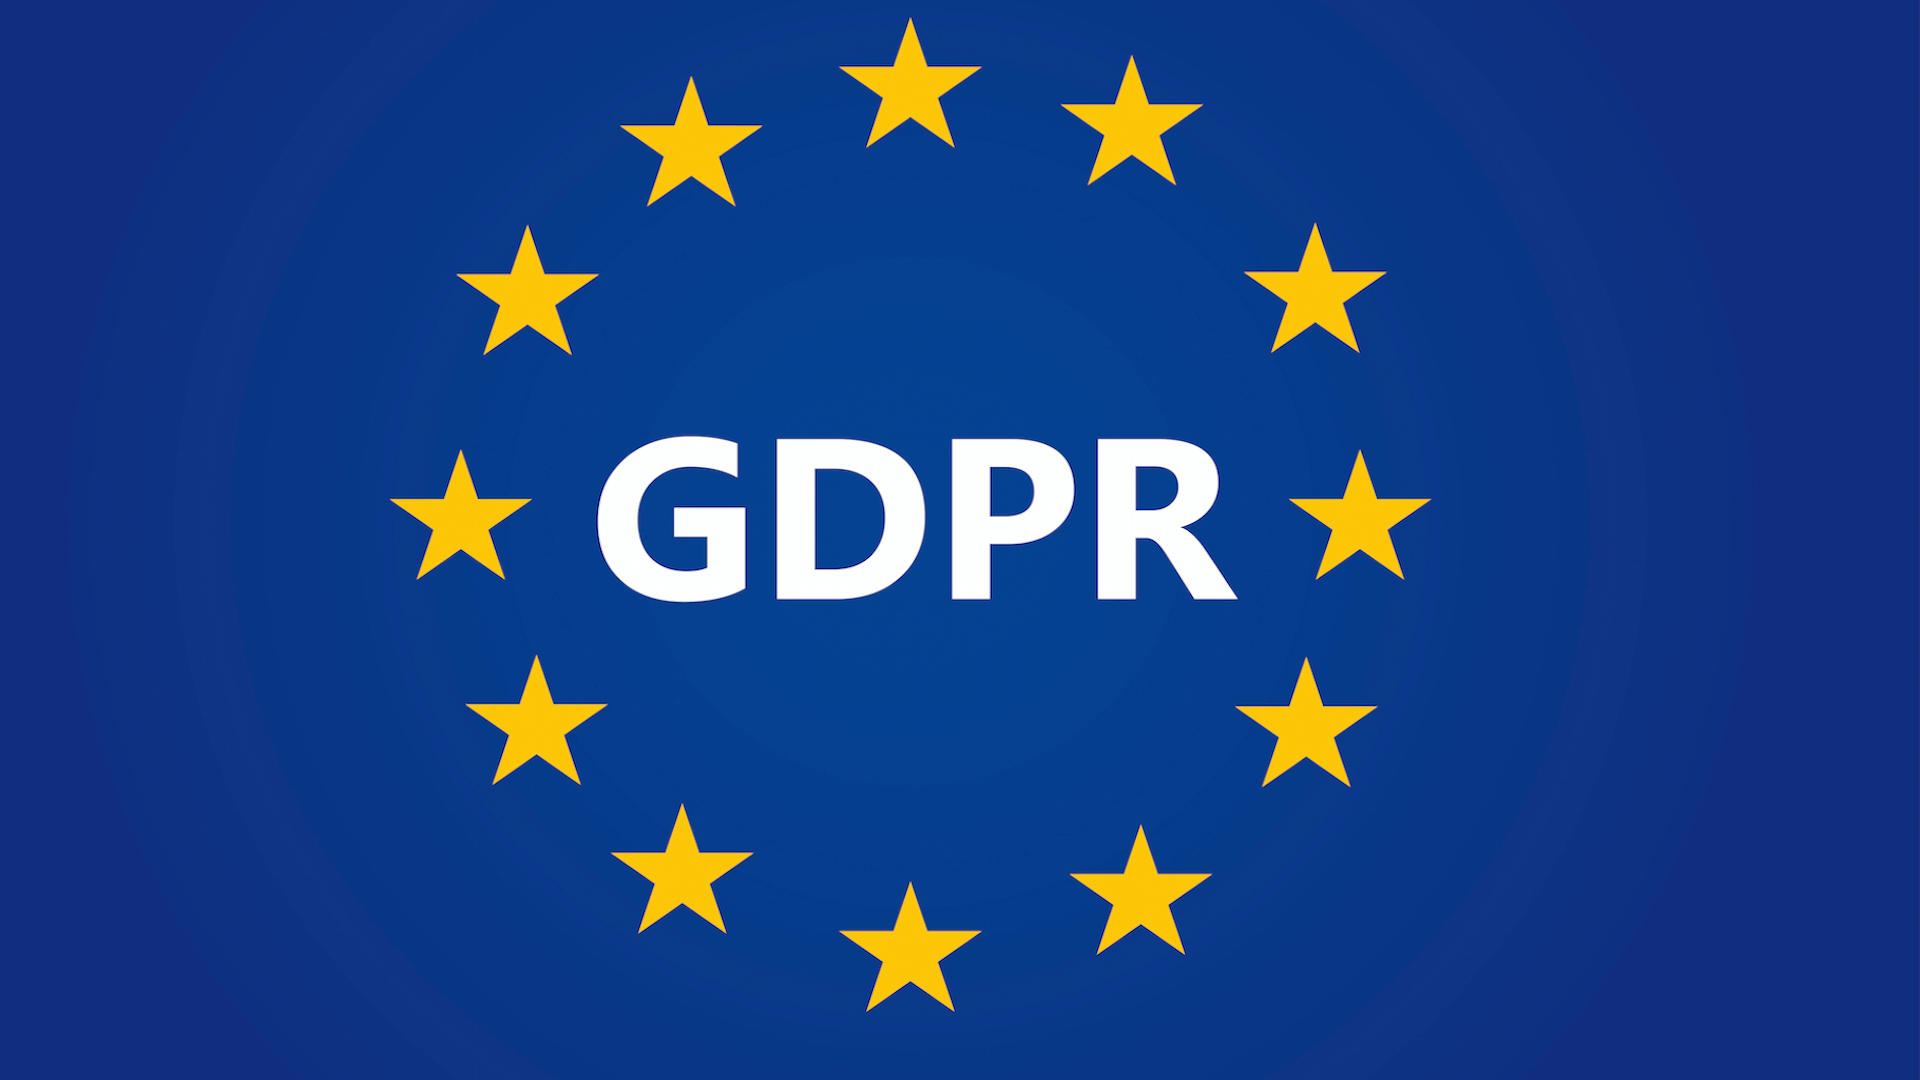 GDPR Logo with European flag